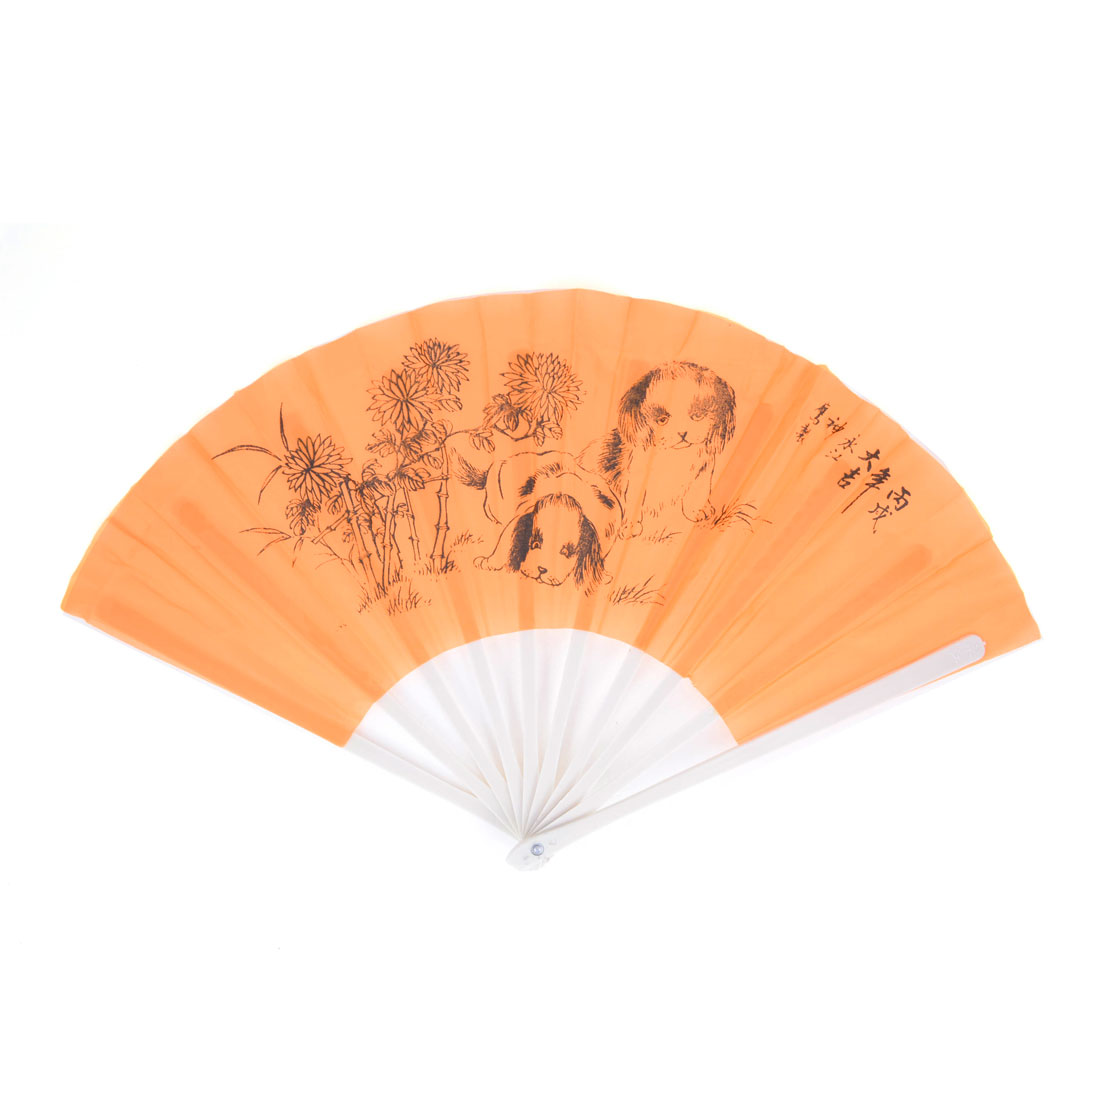 "Ladies White Plastic Ribs Folding Frame Branch Bamboo Dogs Printed 10.4"" Long Nylon Fabric Foldable Hand Fan Orange"